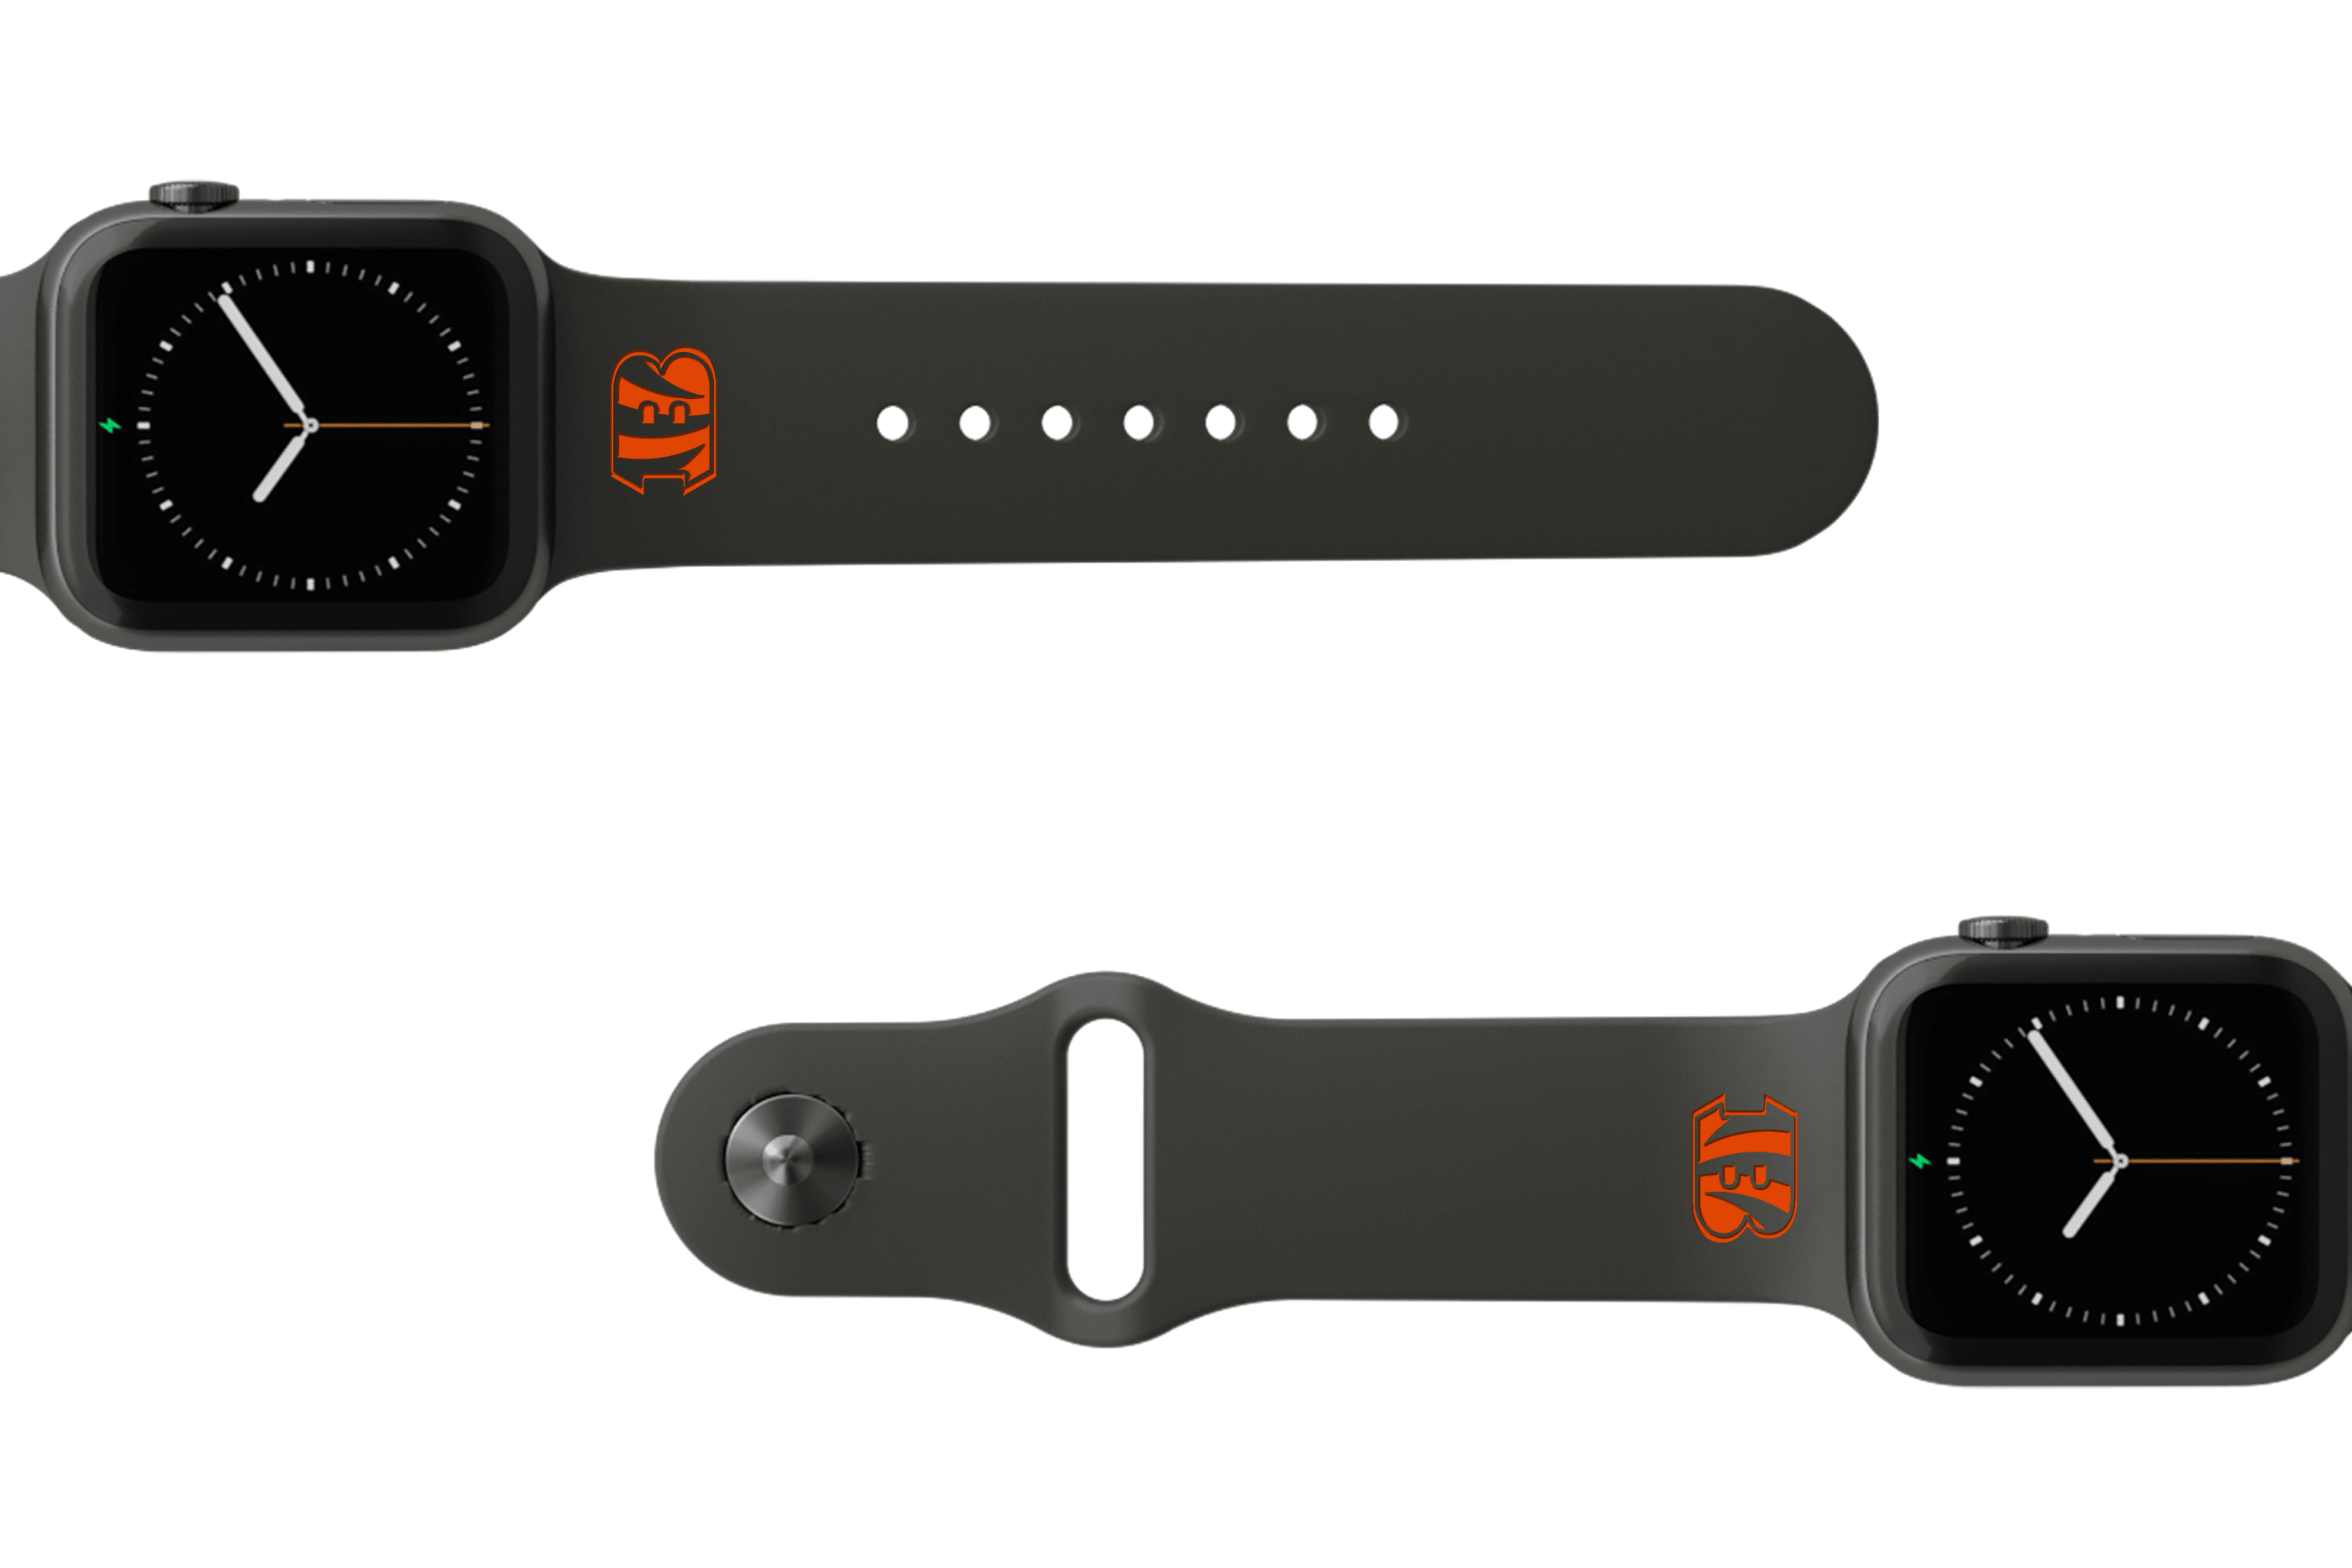 NFL Cincinnati Bengals Black   apple watch band with gray hardware viewed from top down